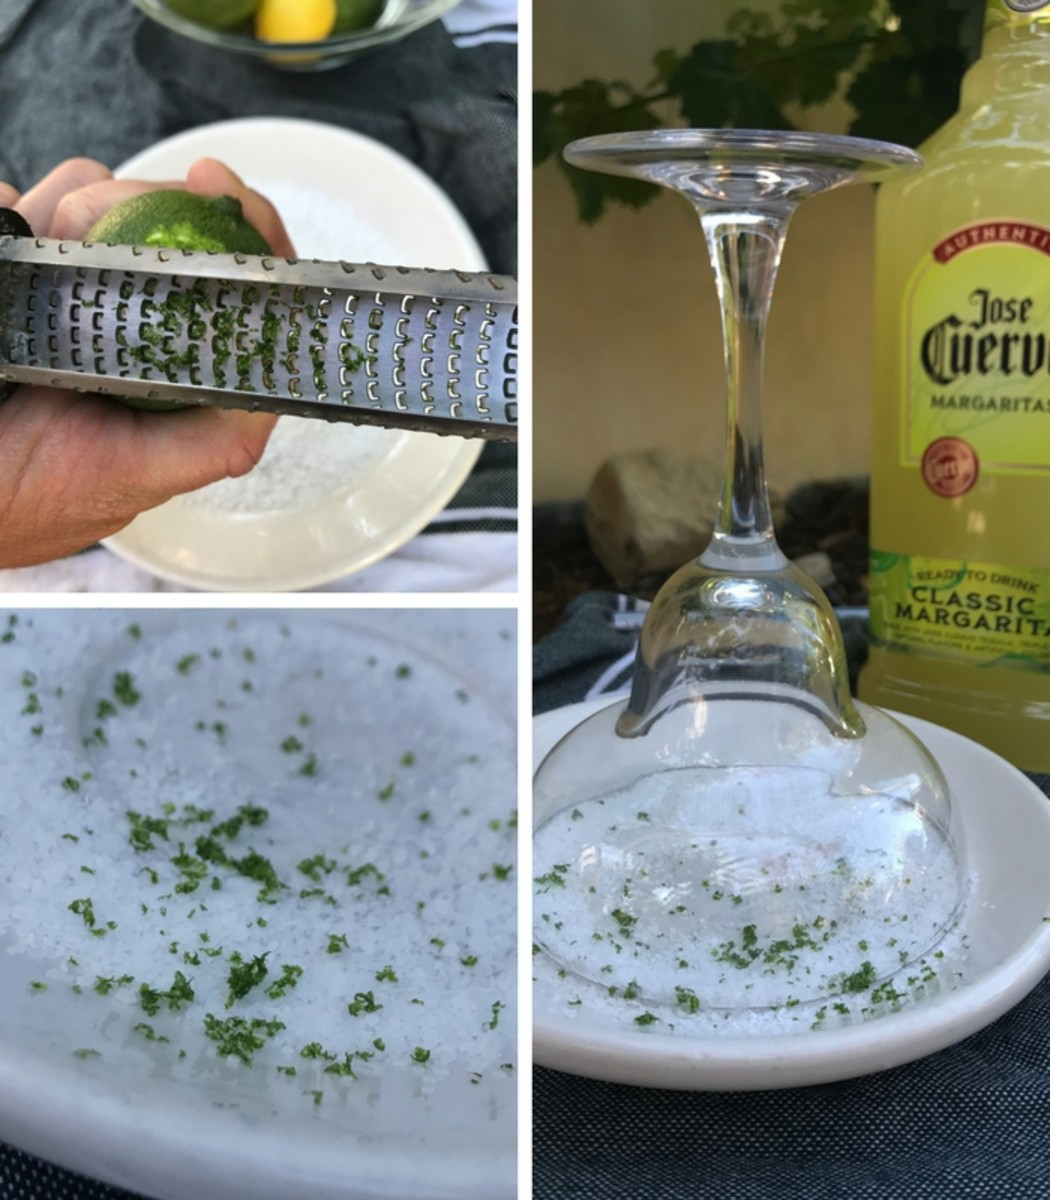 Margarita lime salt